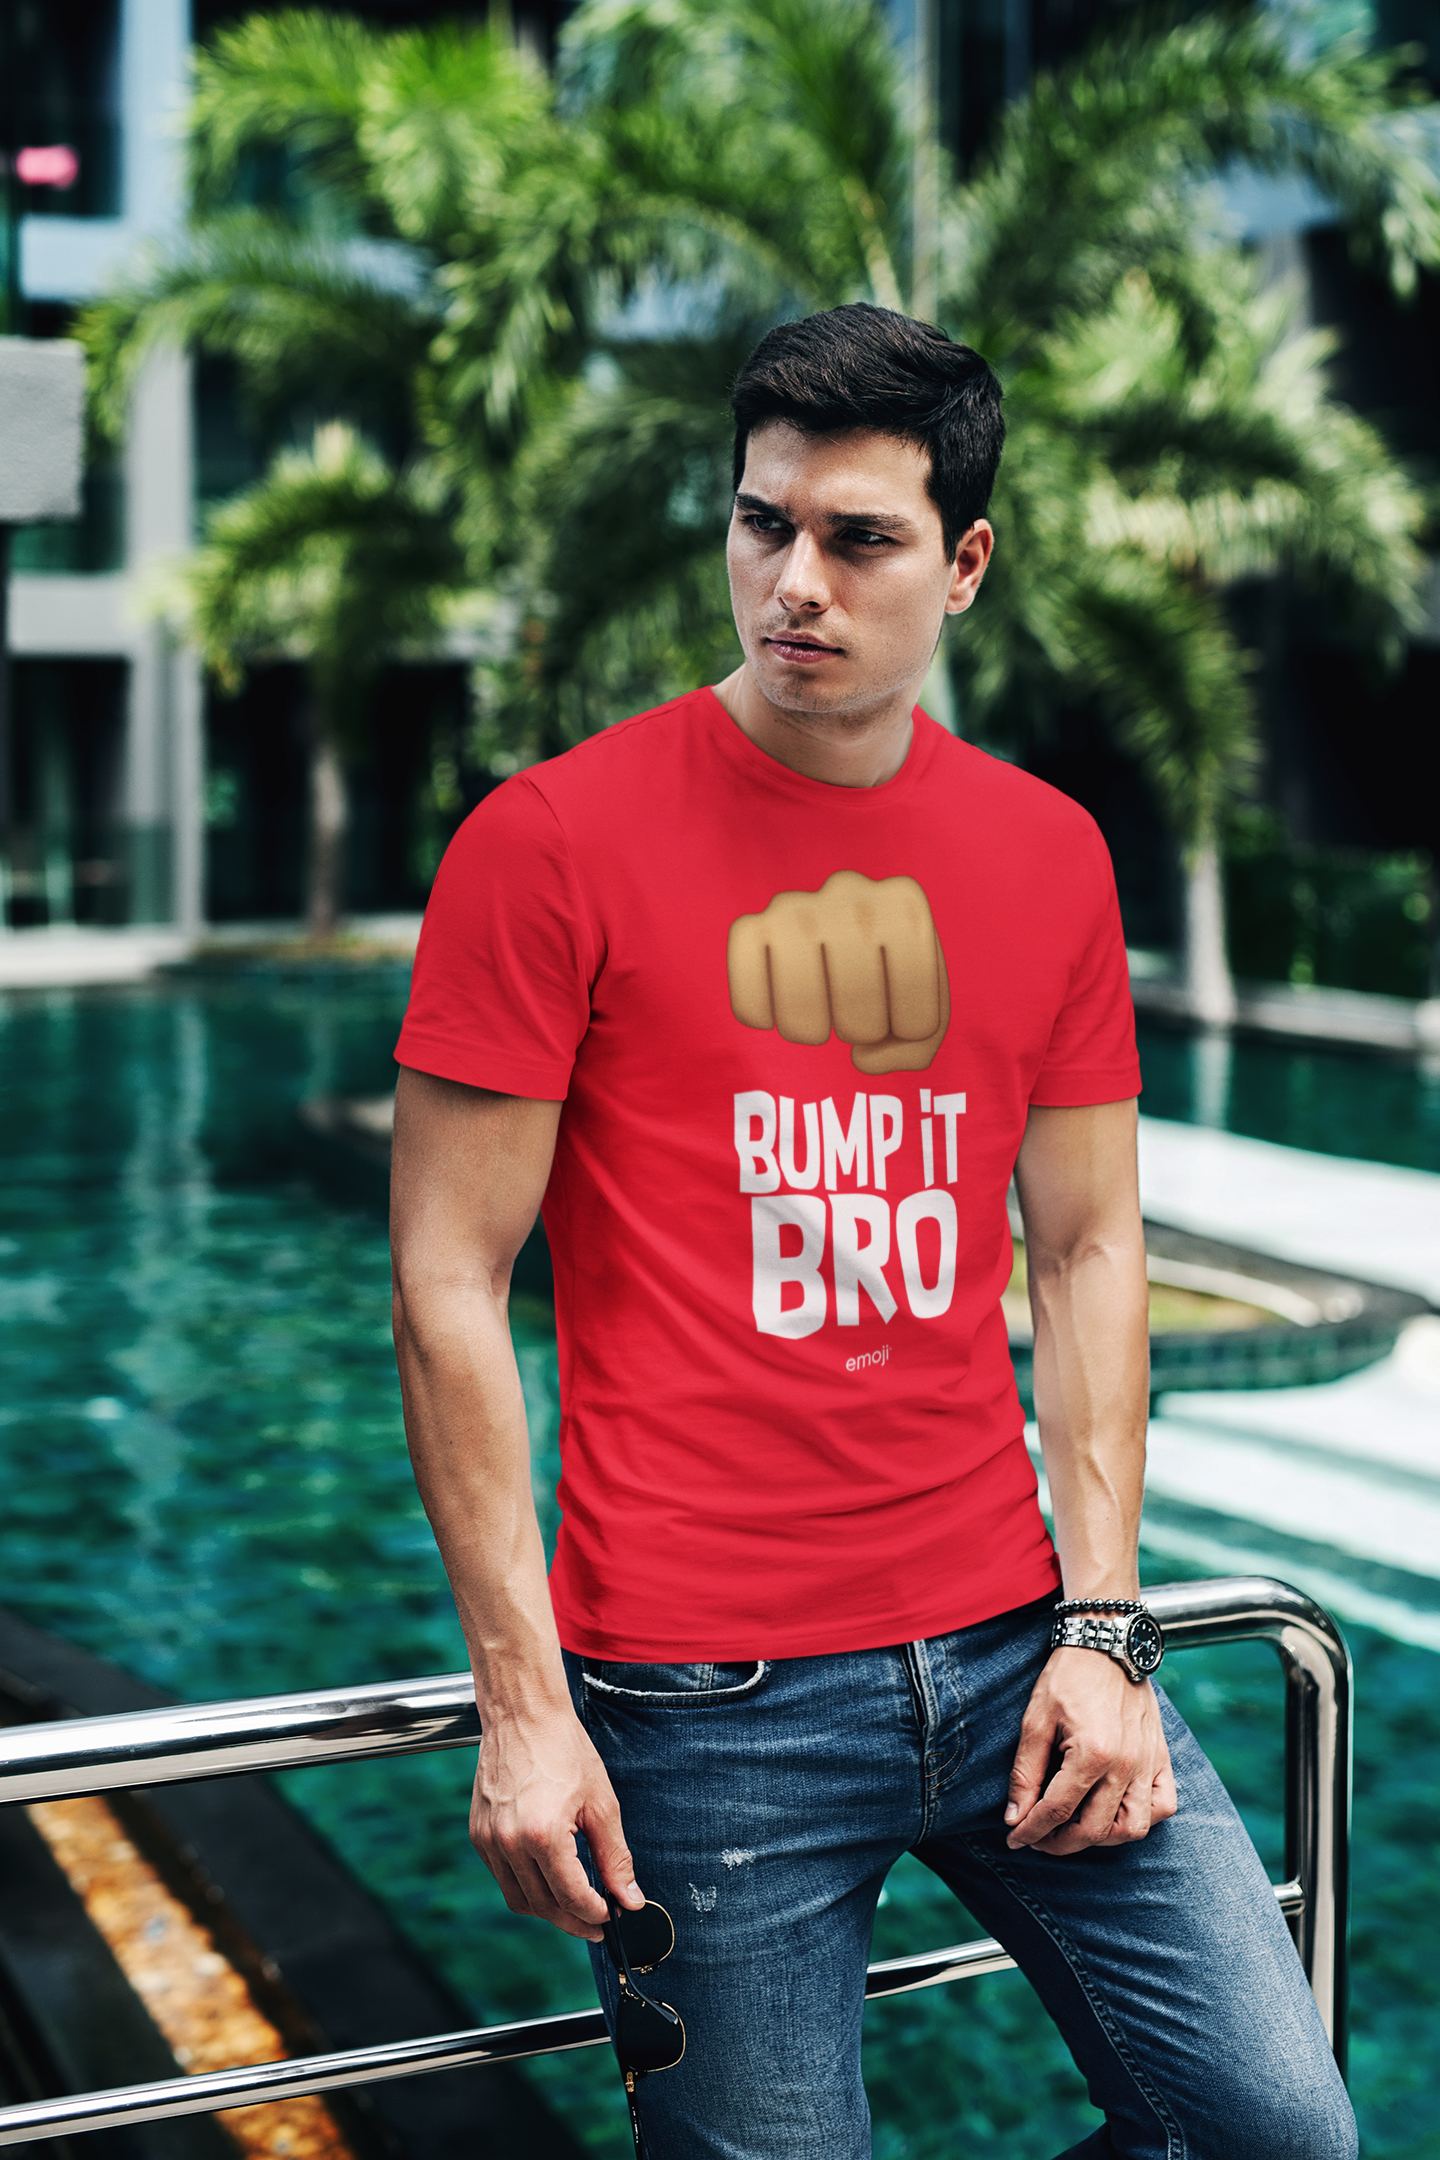 Official Licensed emoji Printed T-Shirt for Men - Bump It Bro